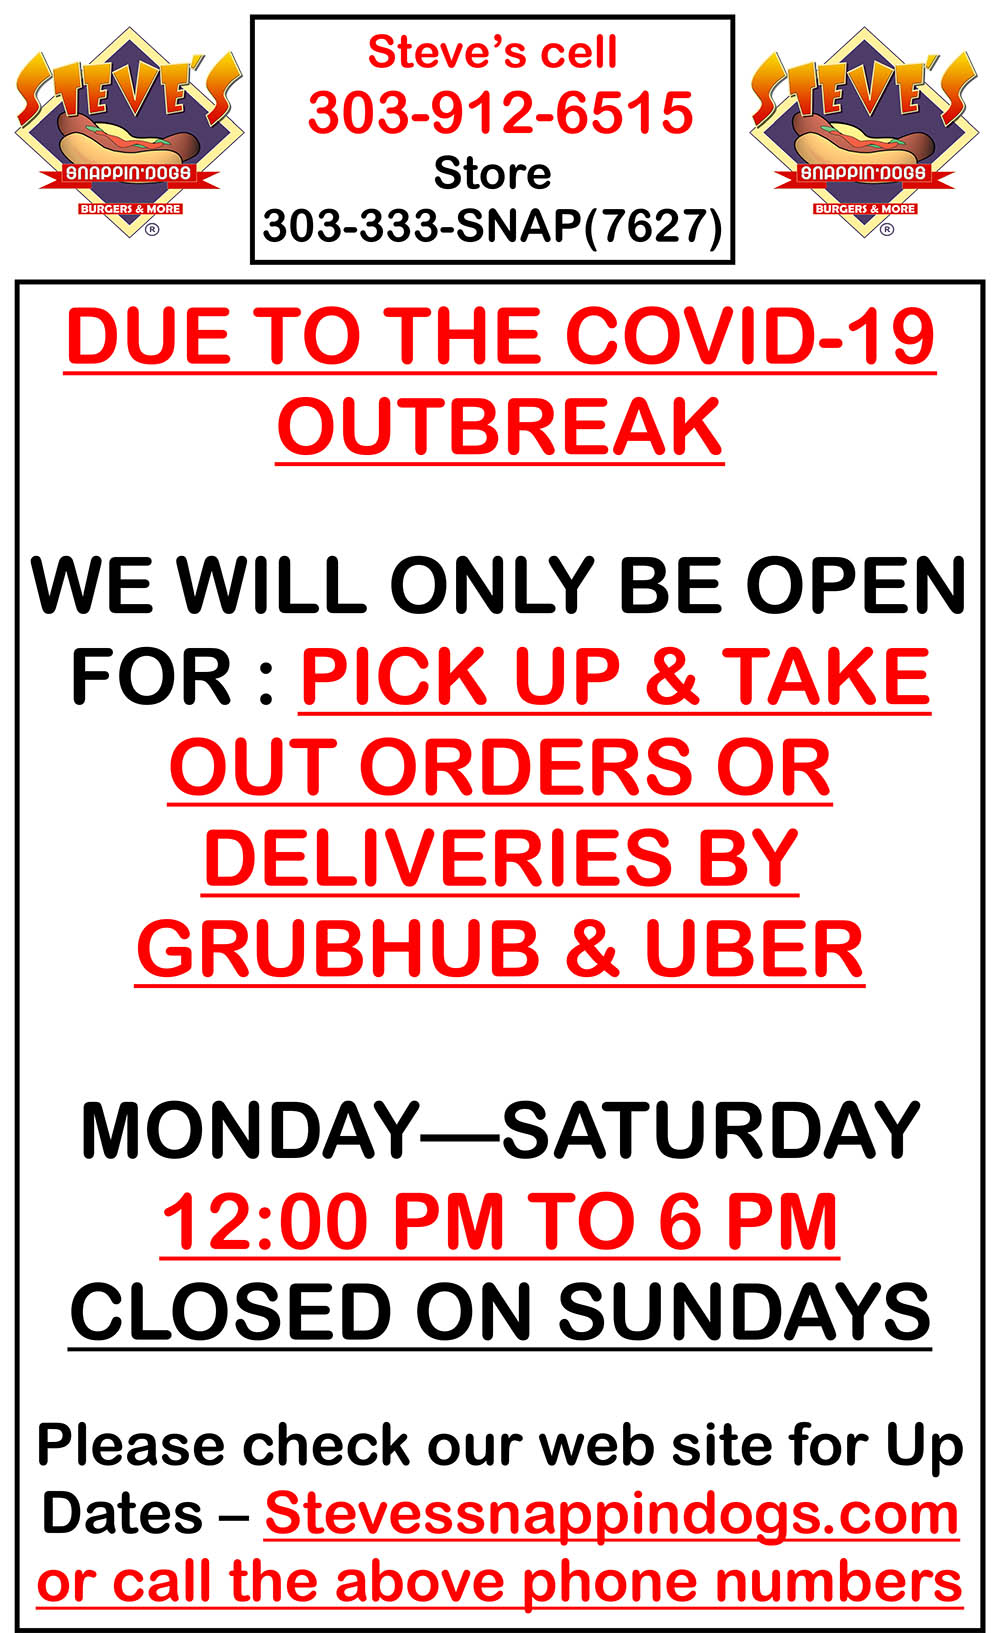 Due to the Covid-19 Outbreak, we have decided to change hours.